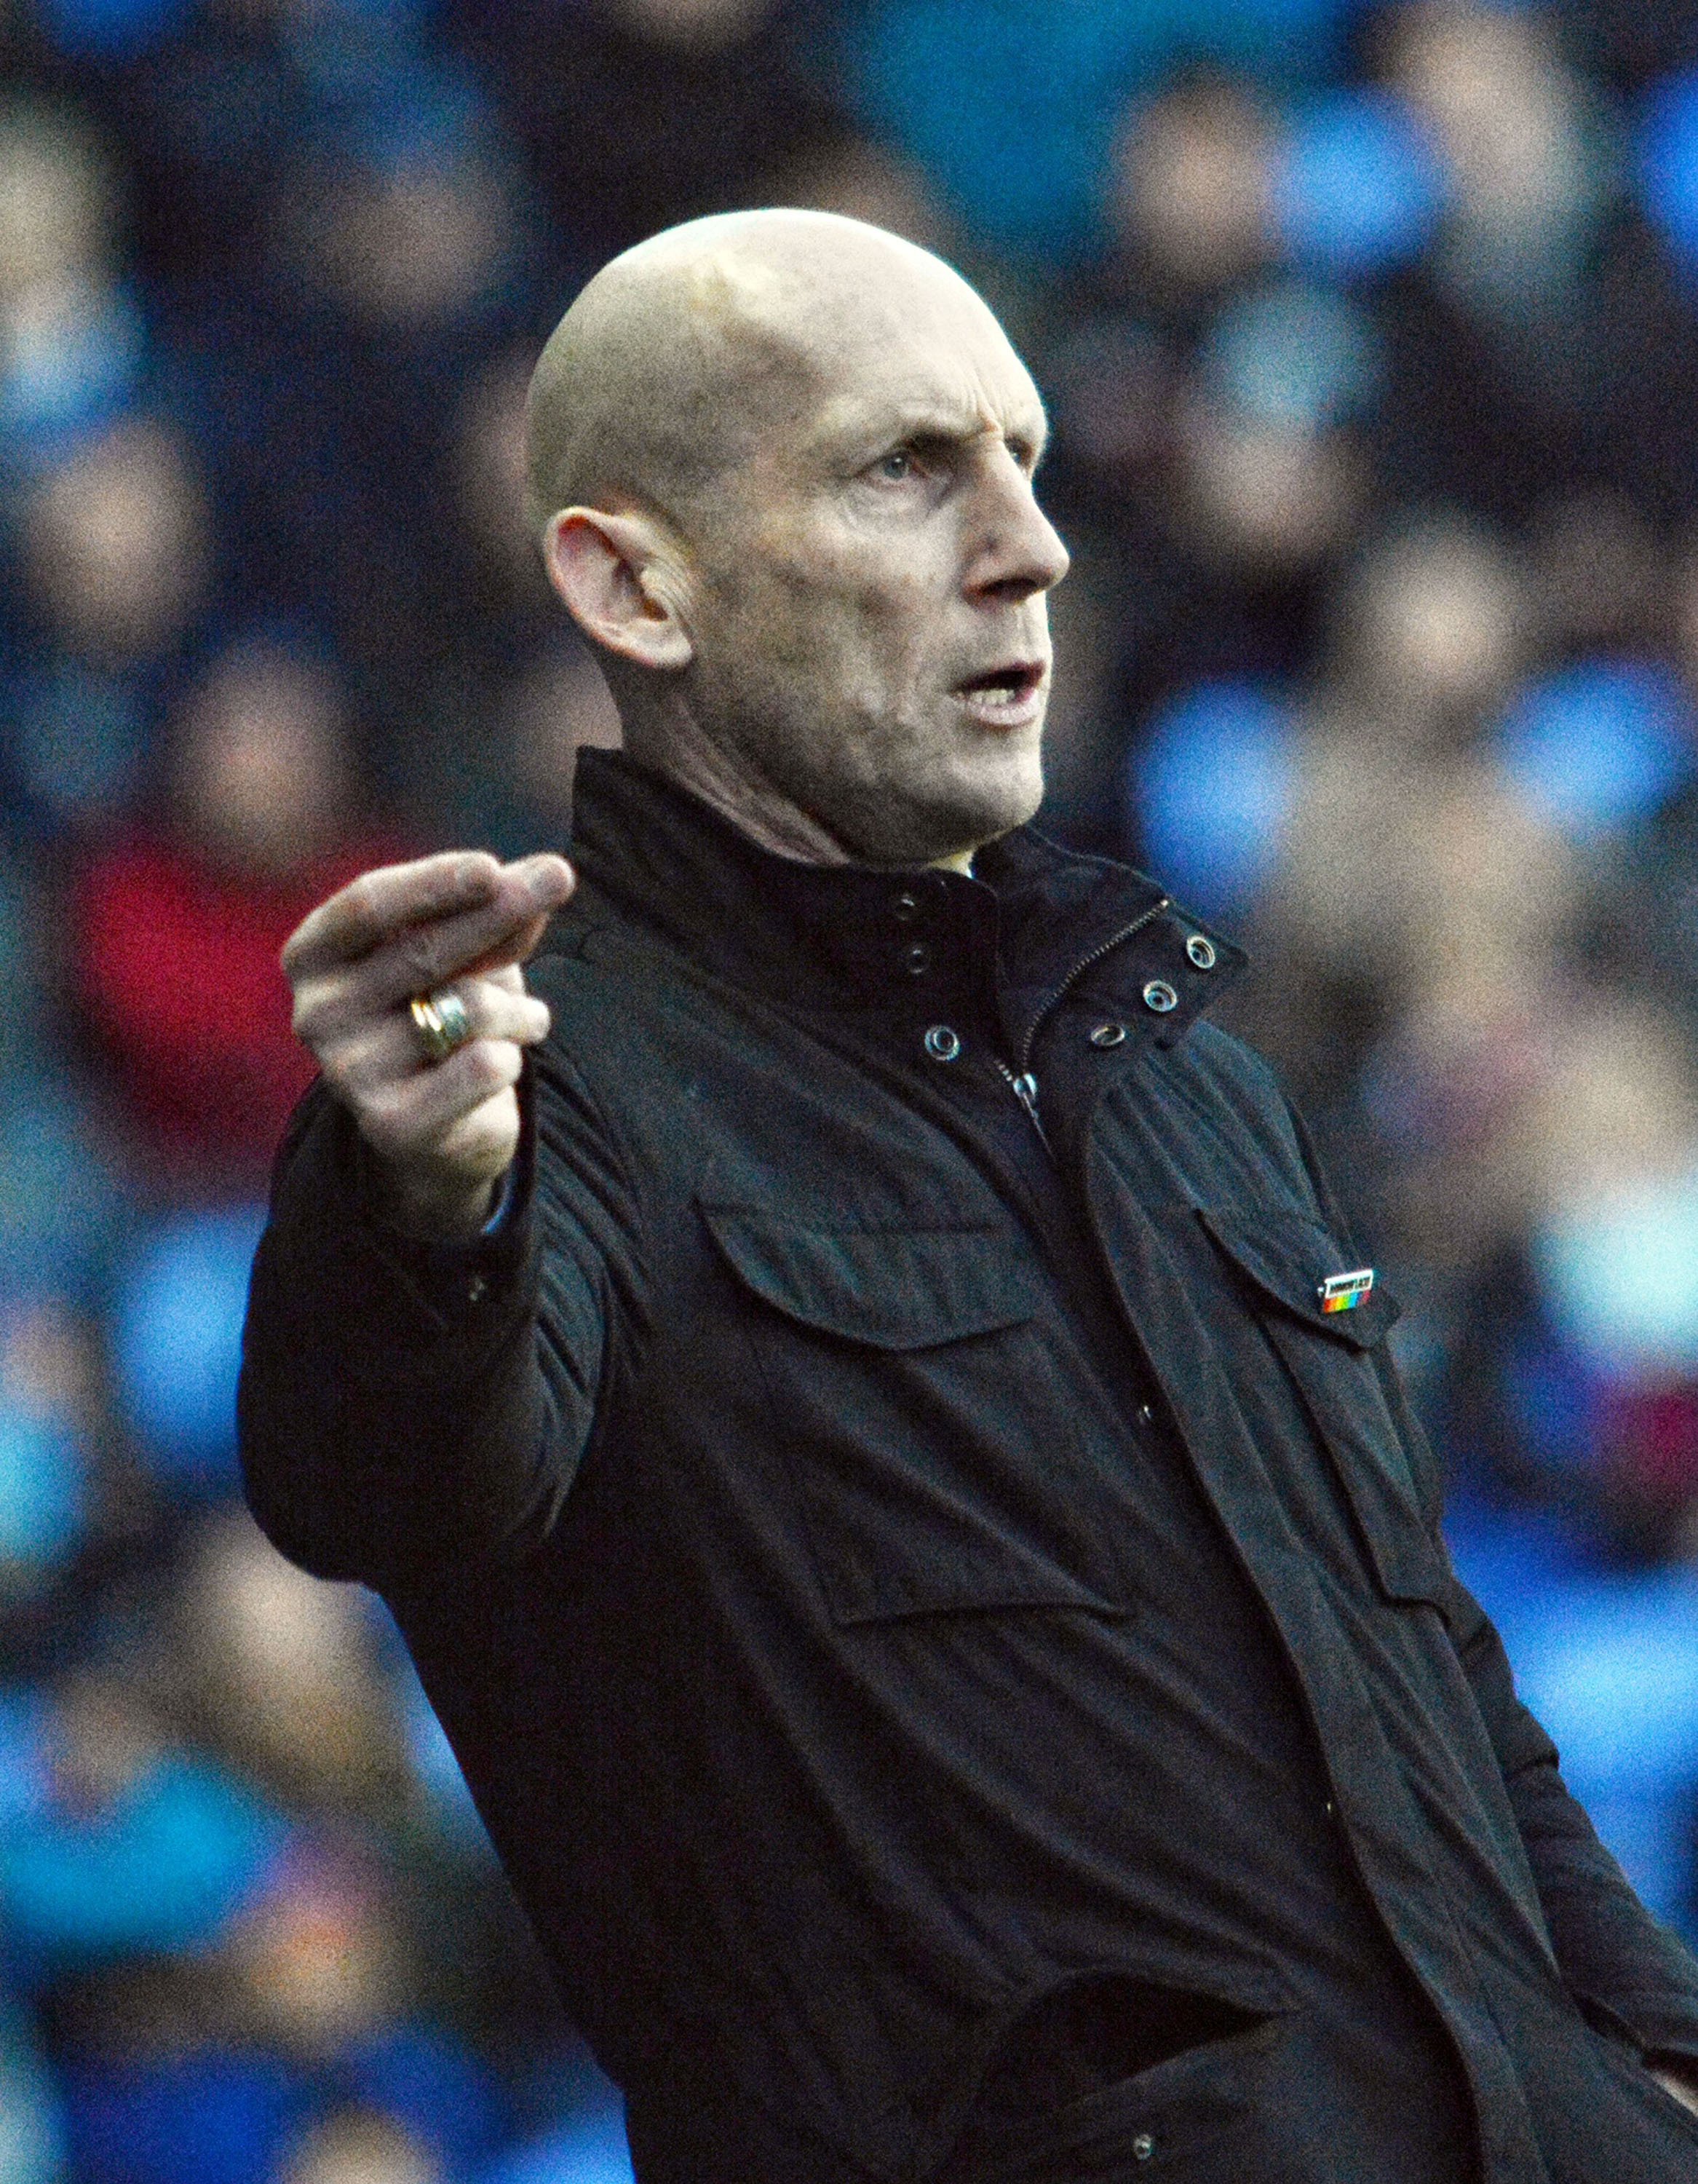 Jaap Stam 171192 Reading 0:0 Sheffield Wednesday - Skybet Championship - Pictures: Mike Swift.